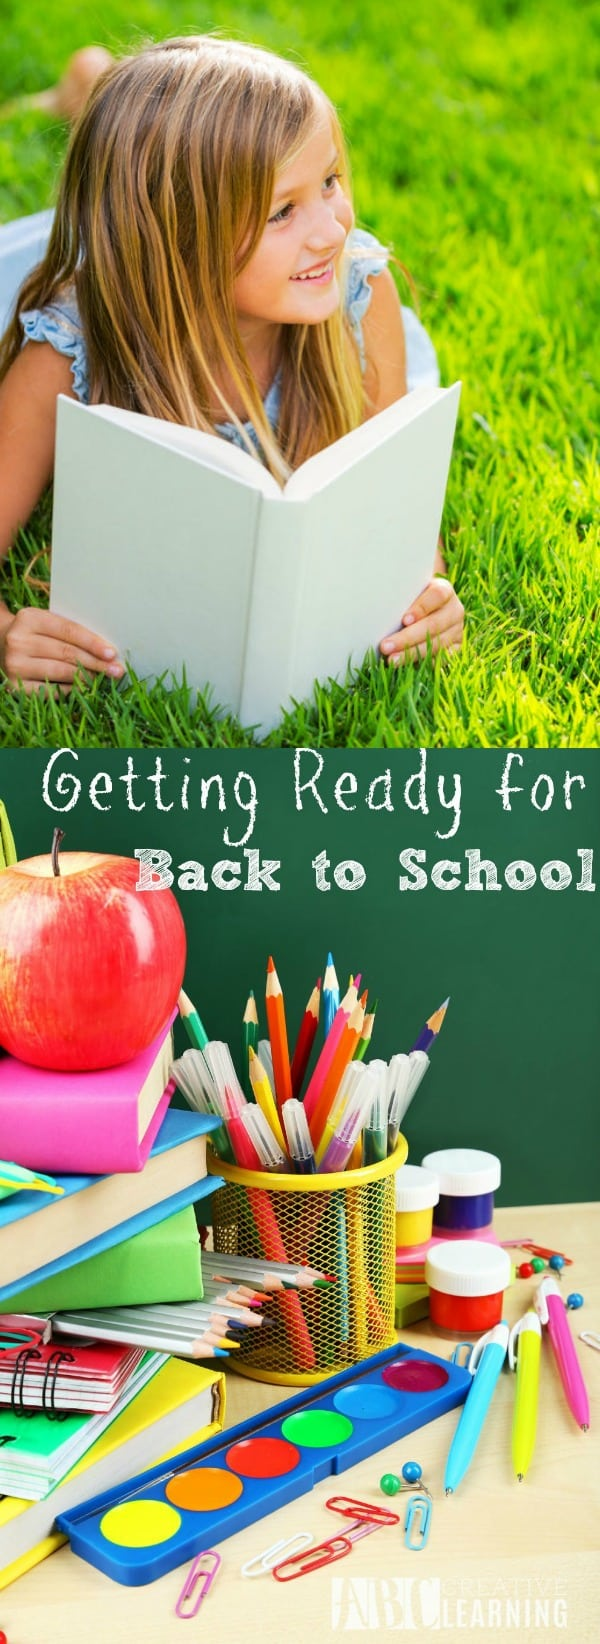 Tips For Getting Kids Ready for Back to School